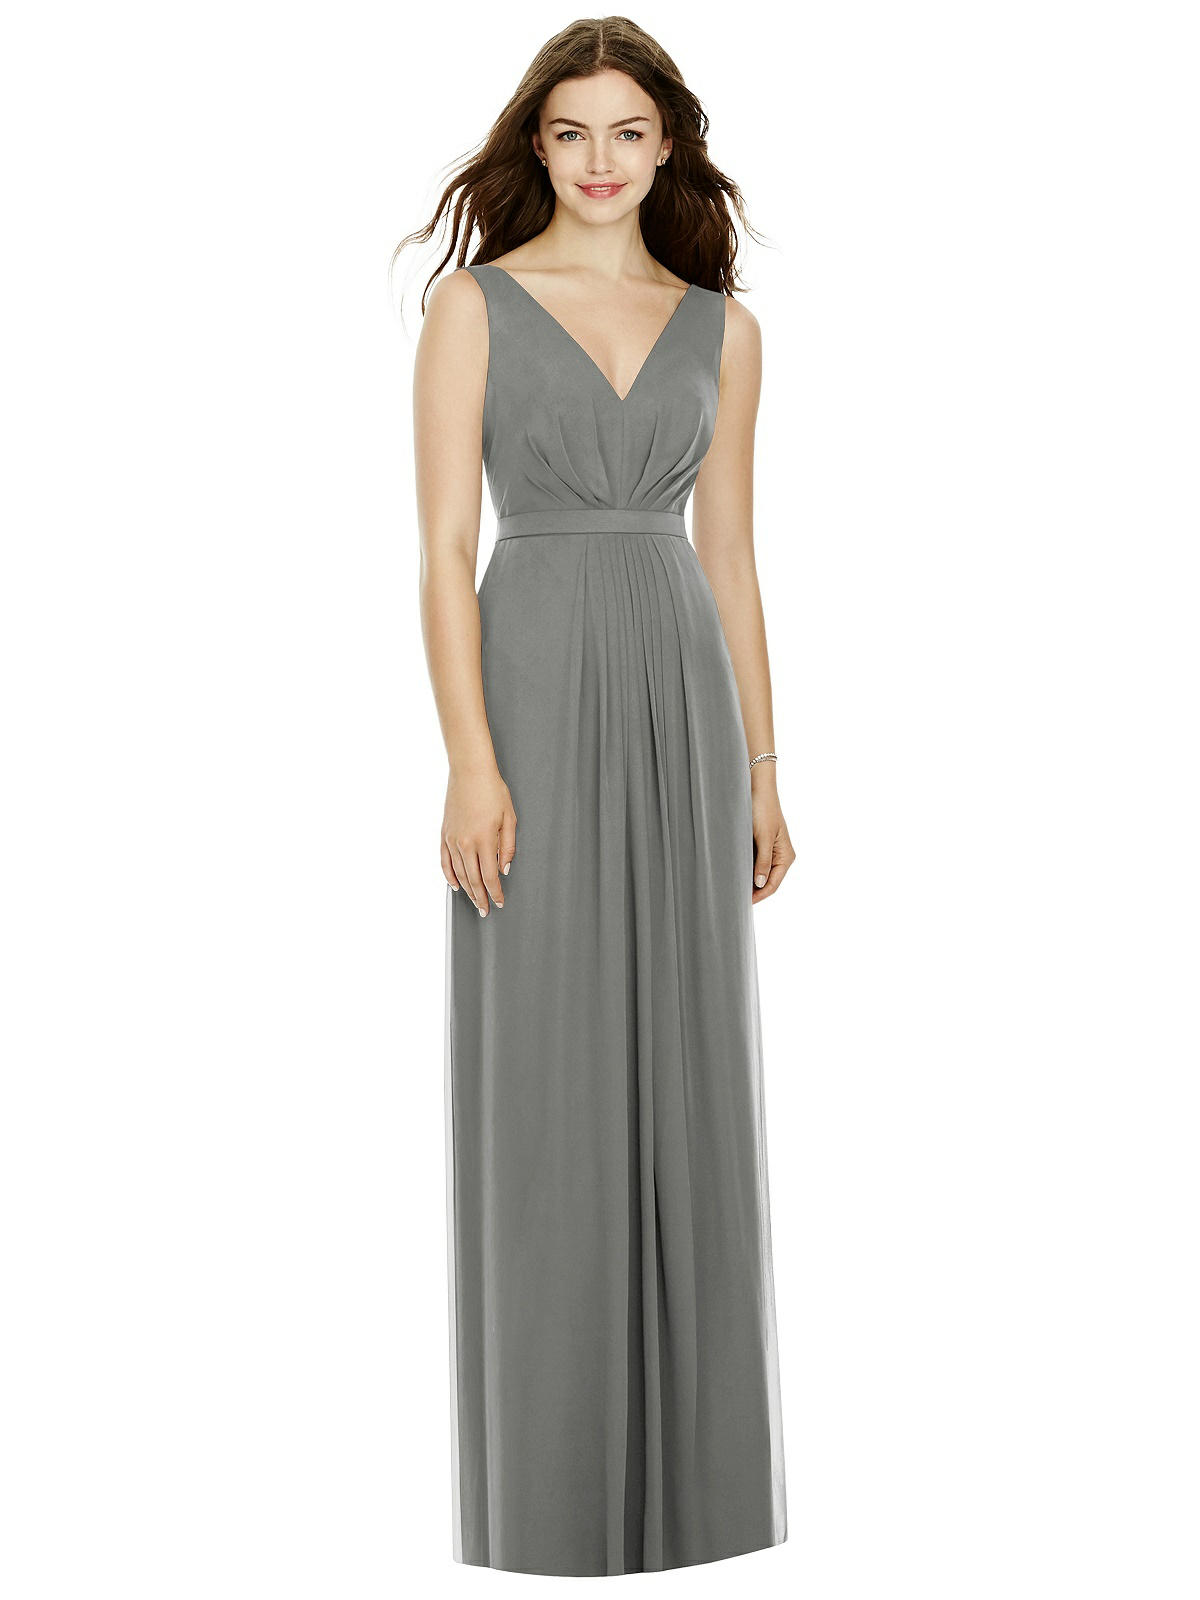 3e4c5254e48 Home · Bridesmaid Dresses · Bella Bridesmaids Dress BB103. ○  ○